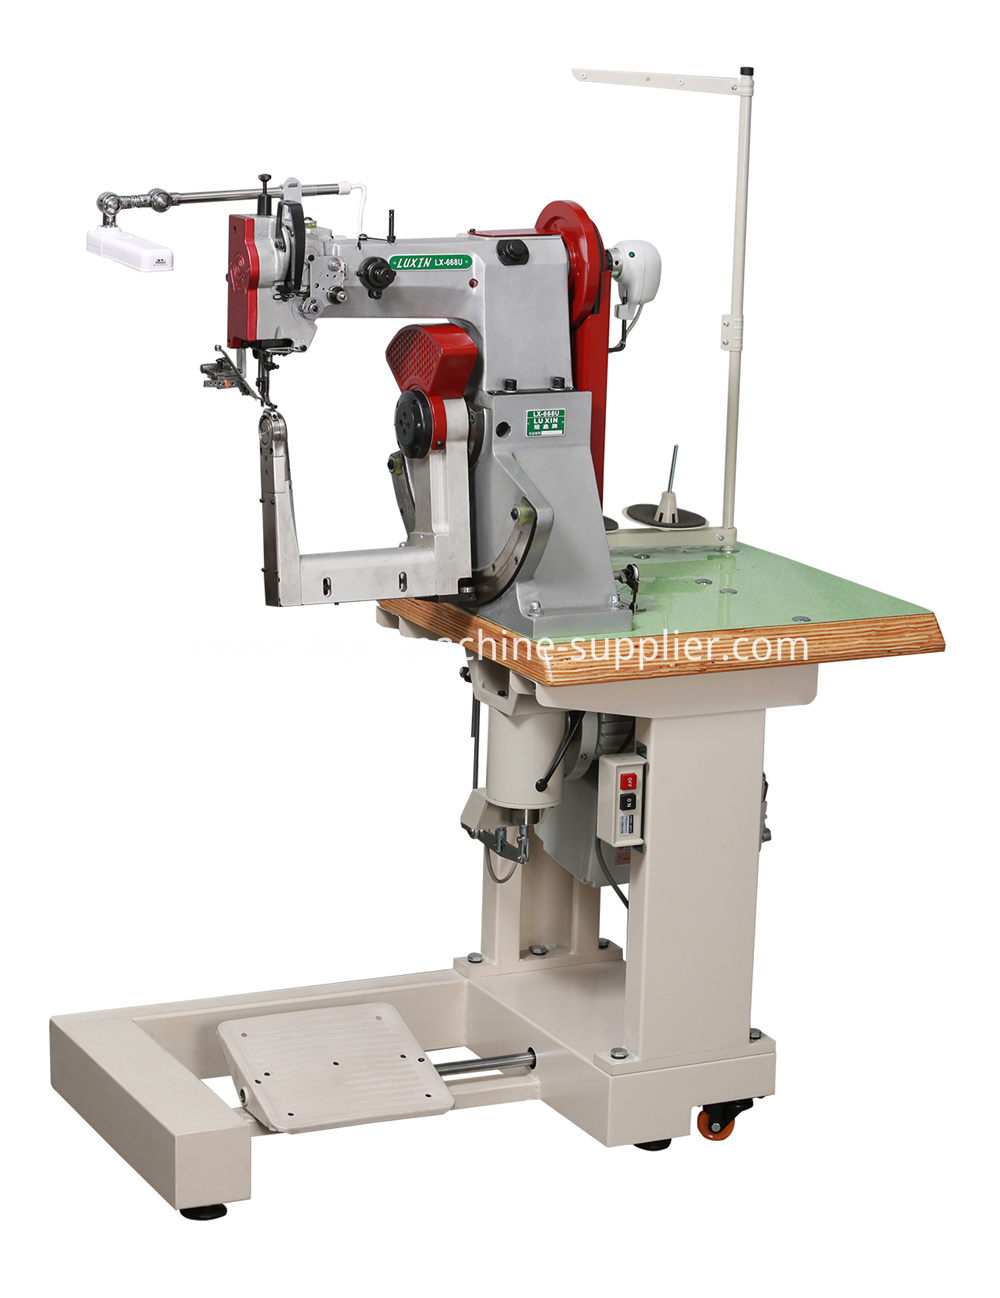 Bag Sewing Machine For Sale